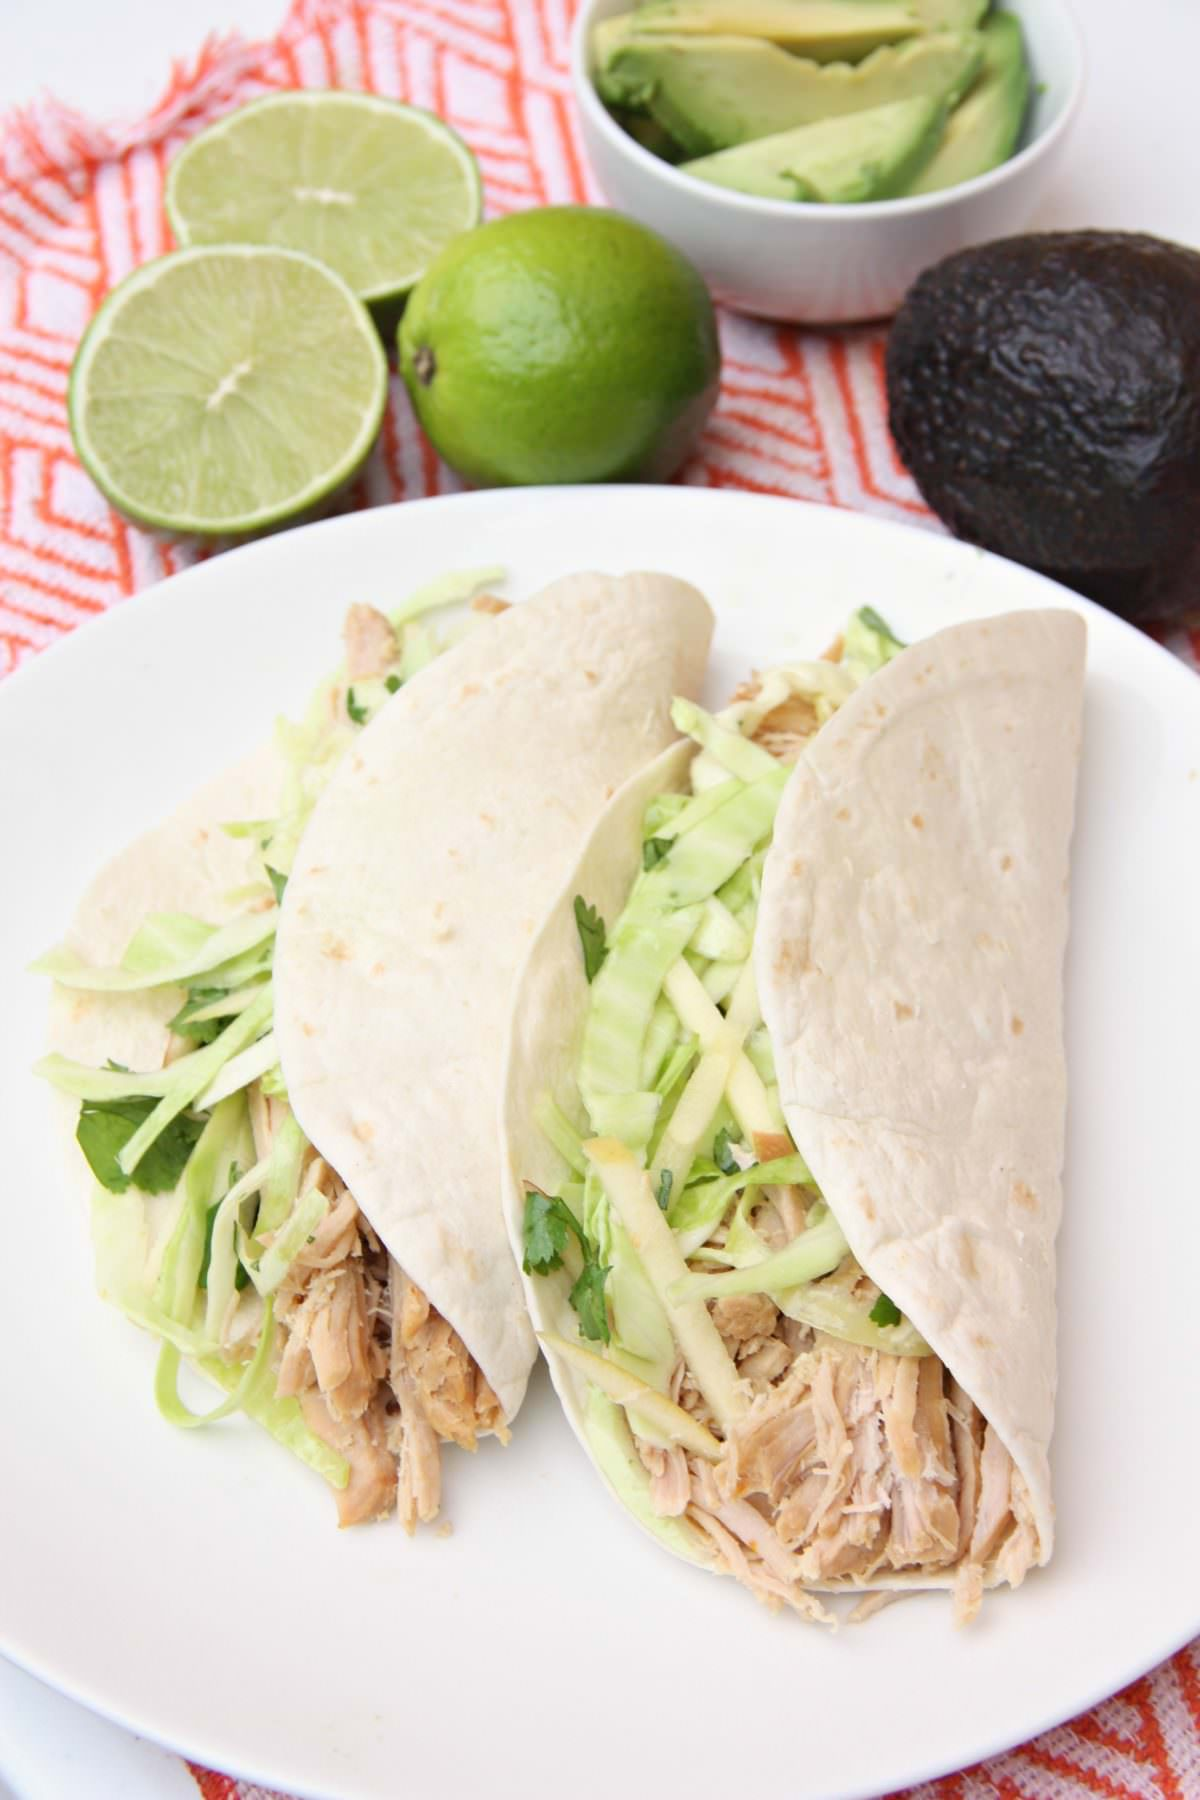 CBC Best Recipes Ever Pork Tacos With Red Cabbage Slaw and G..